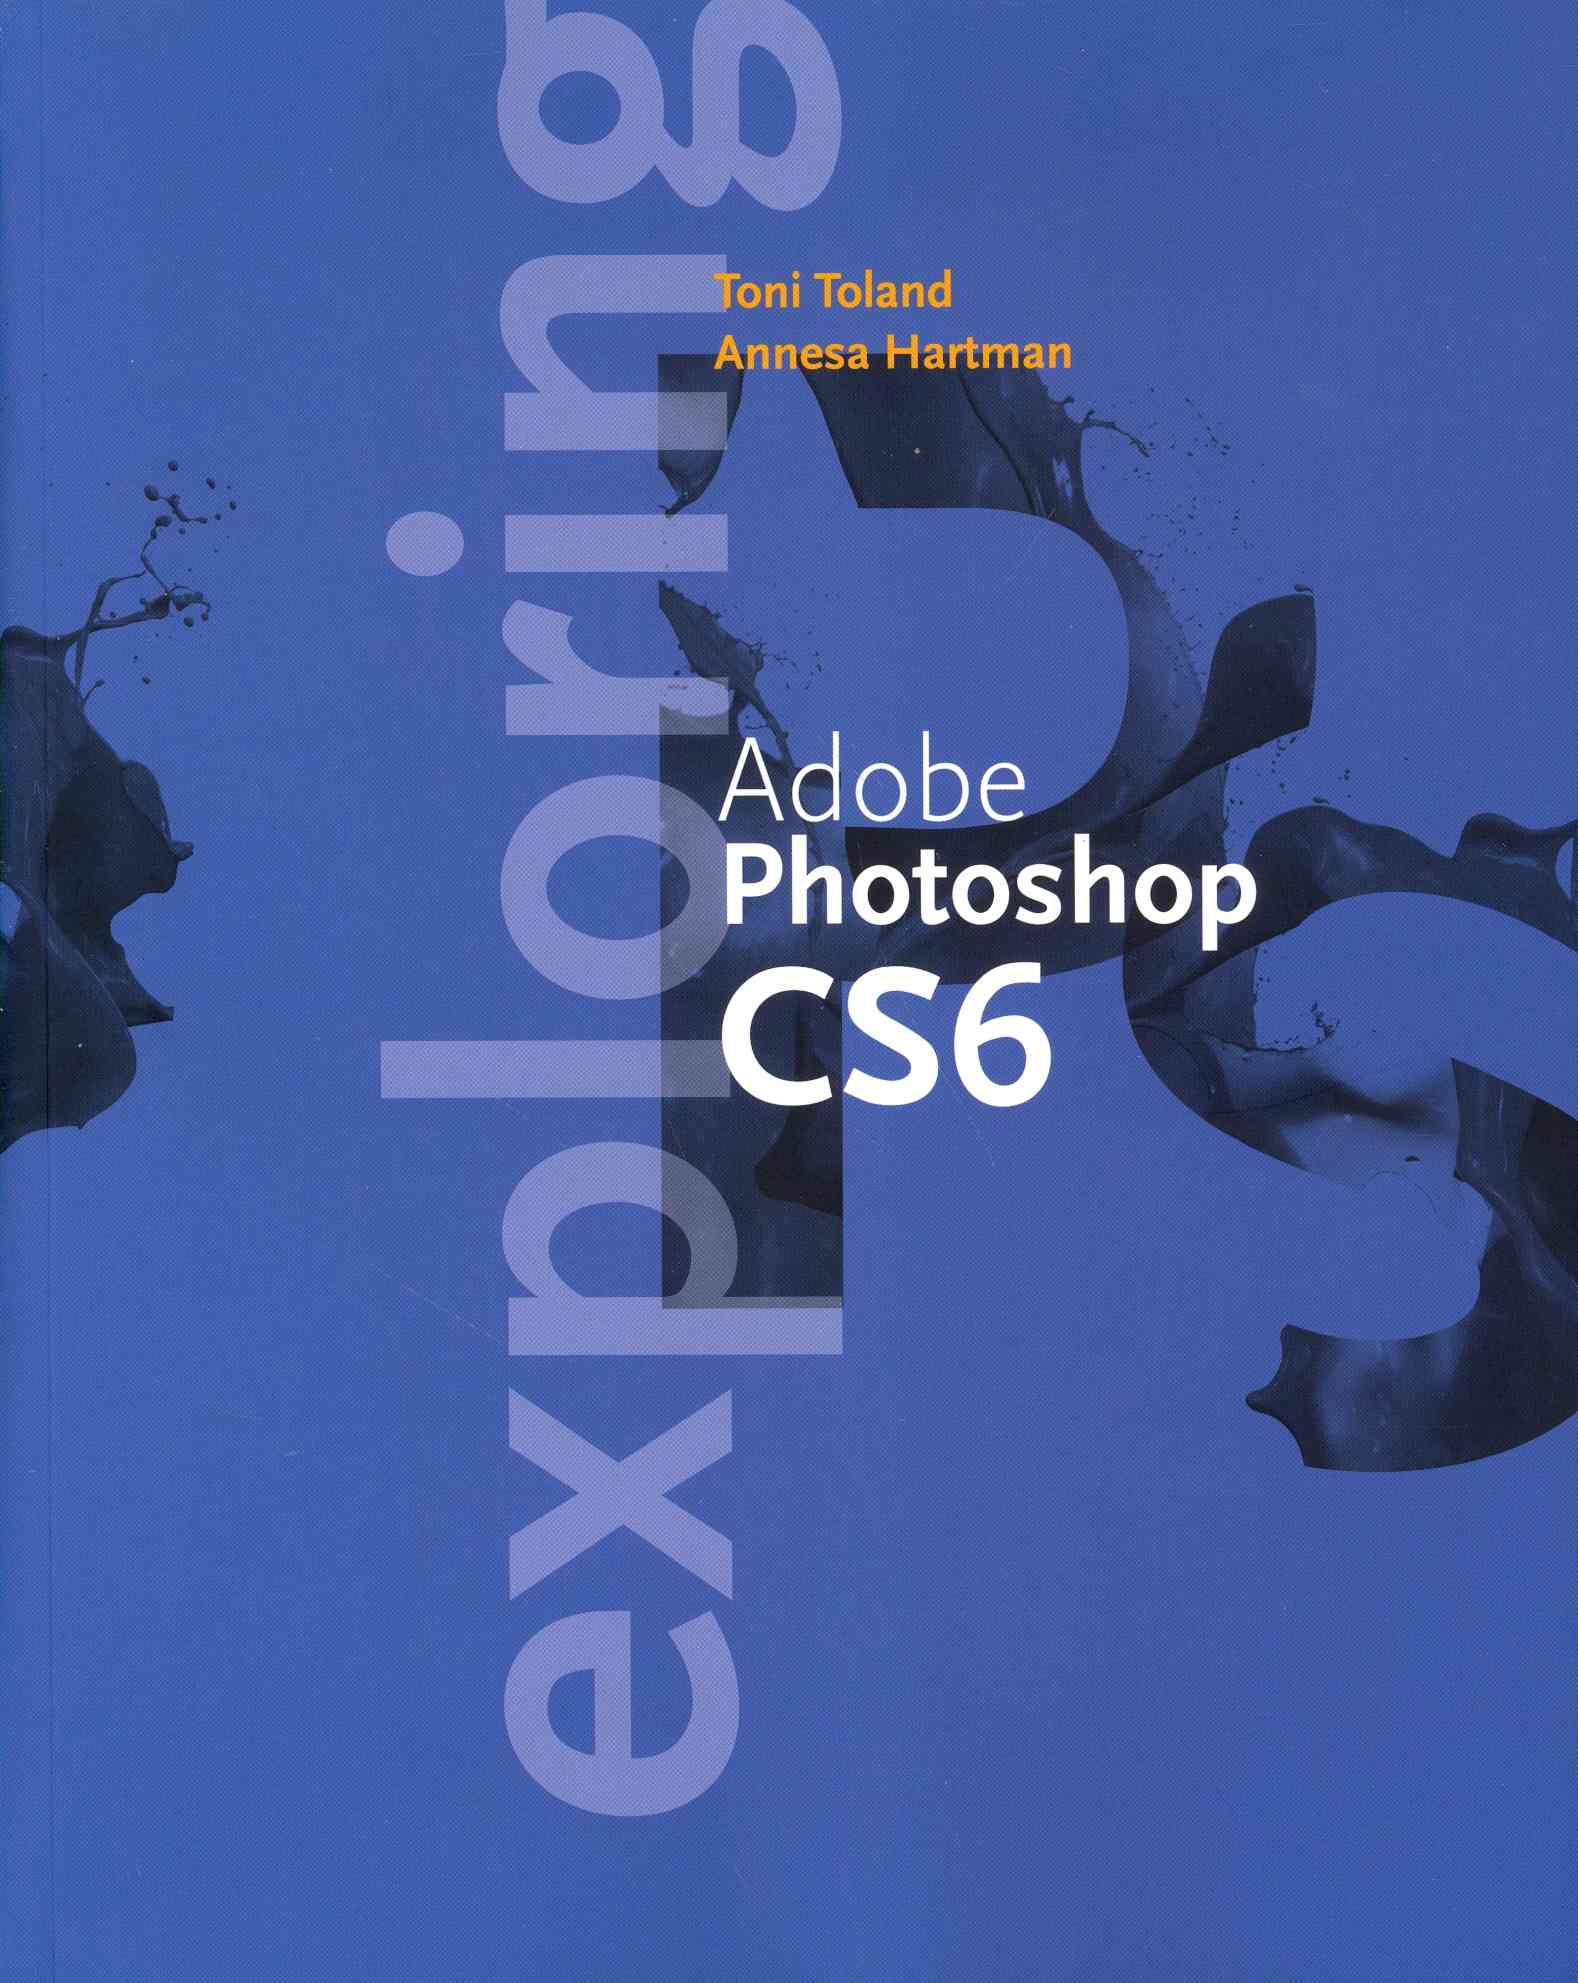 Exploring Adobe Photoshop Cc Update By Toland, Toni/ Hartman, Annesa